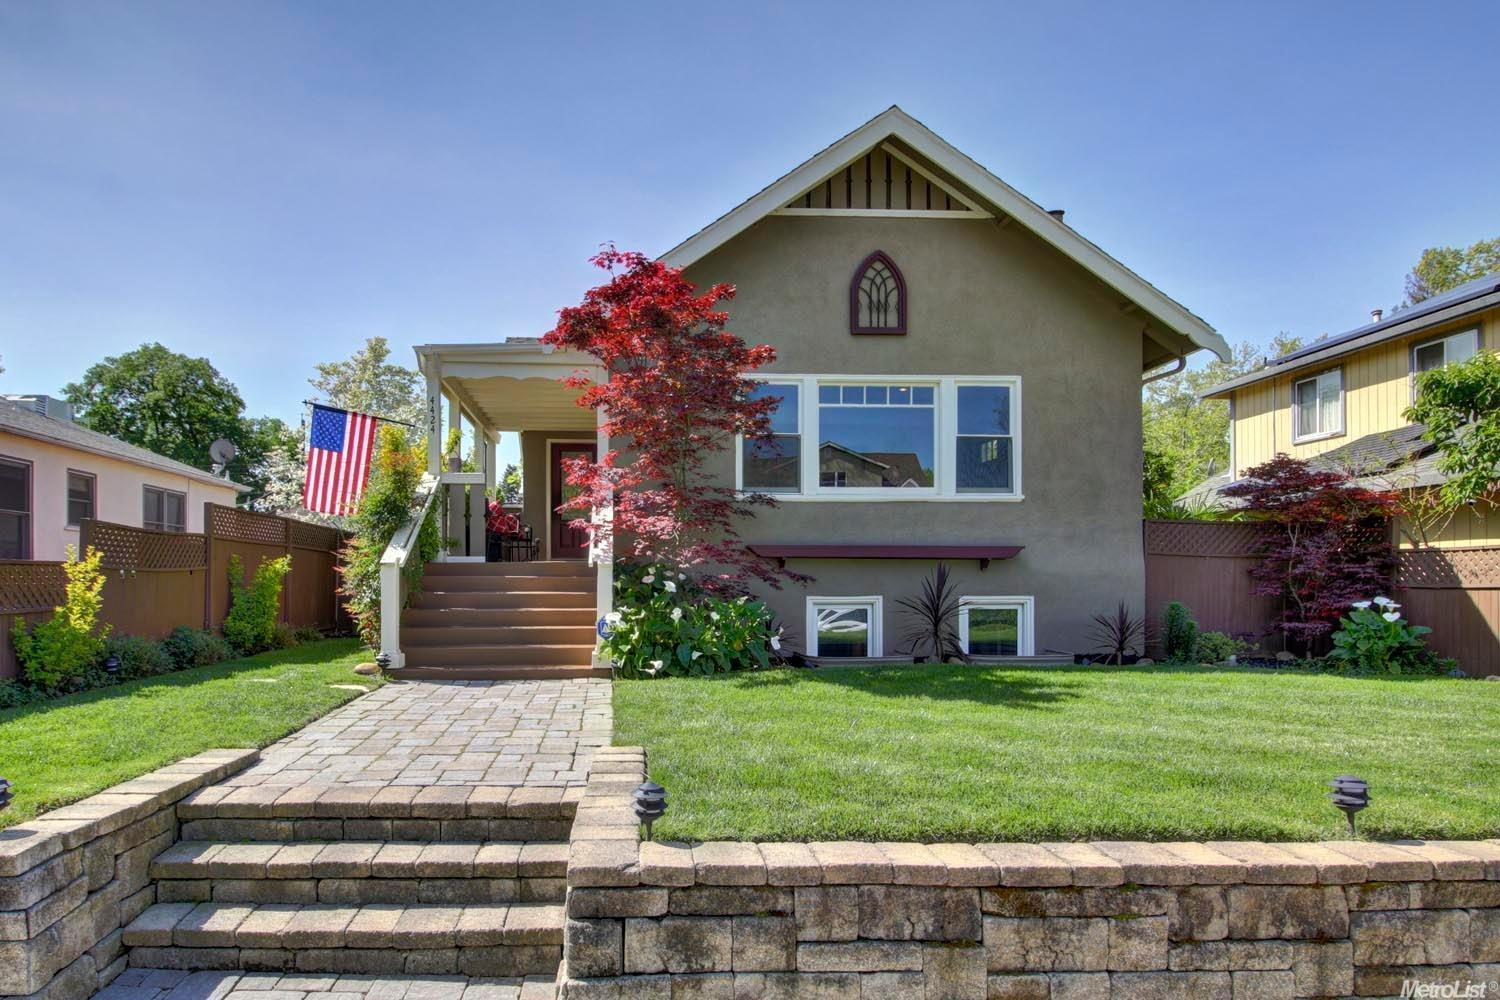 4 bed / 3 full, 1 partial baths Home in Sacramento for $949,999